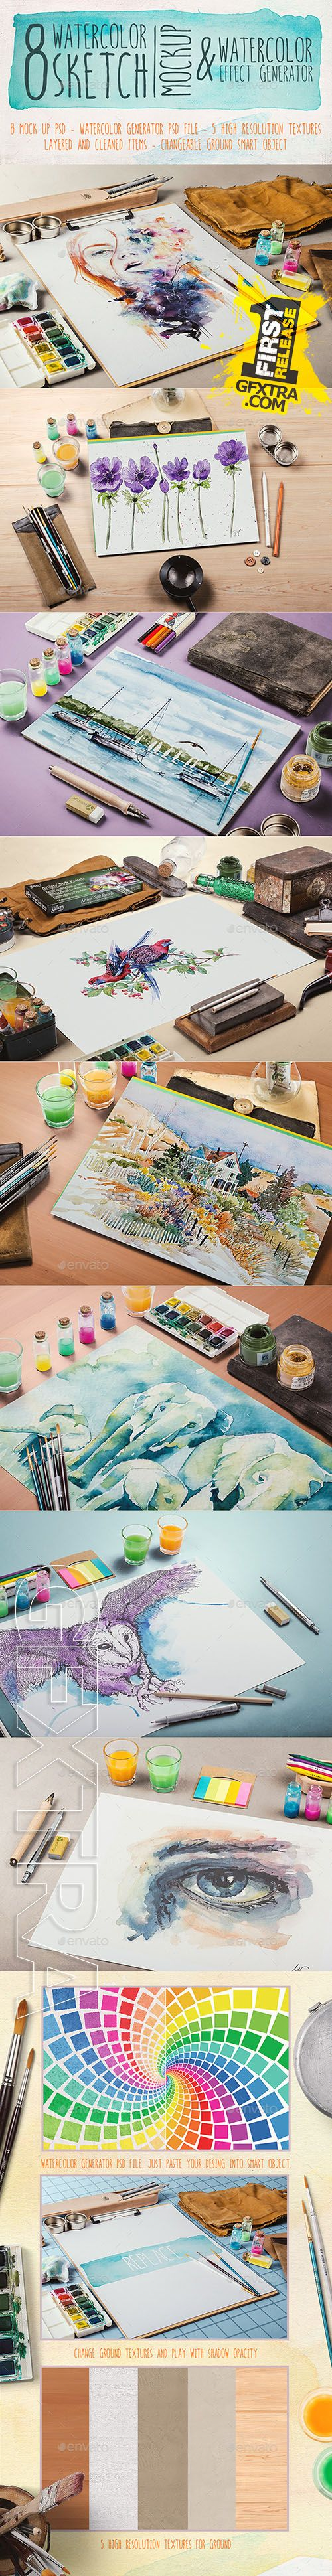 Graphicriver - Watercolor Sketch Mock Up 9008718